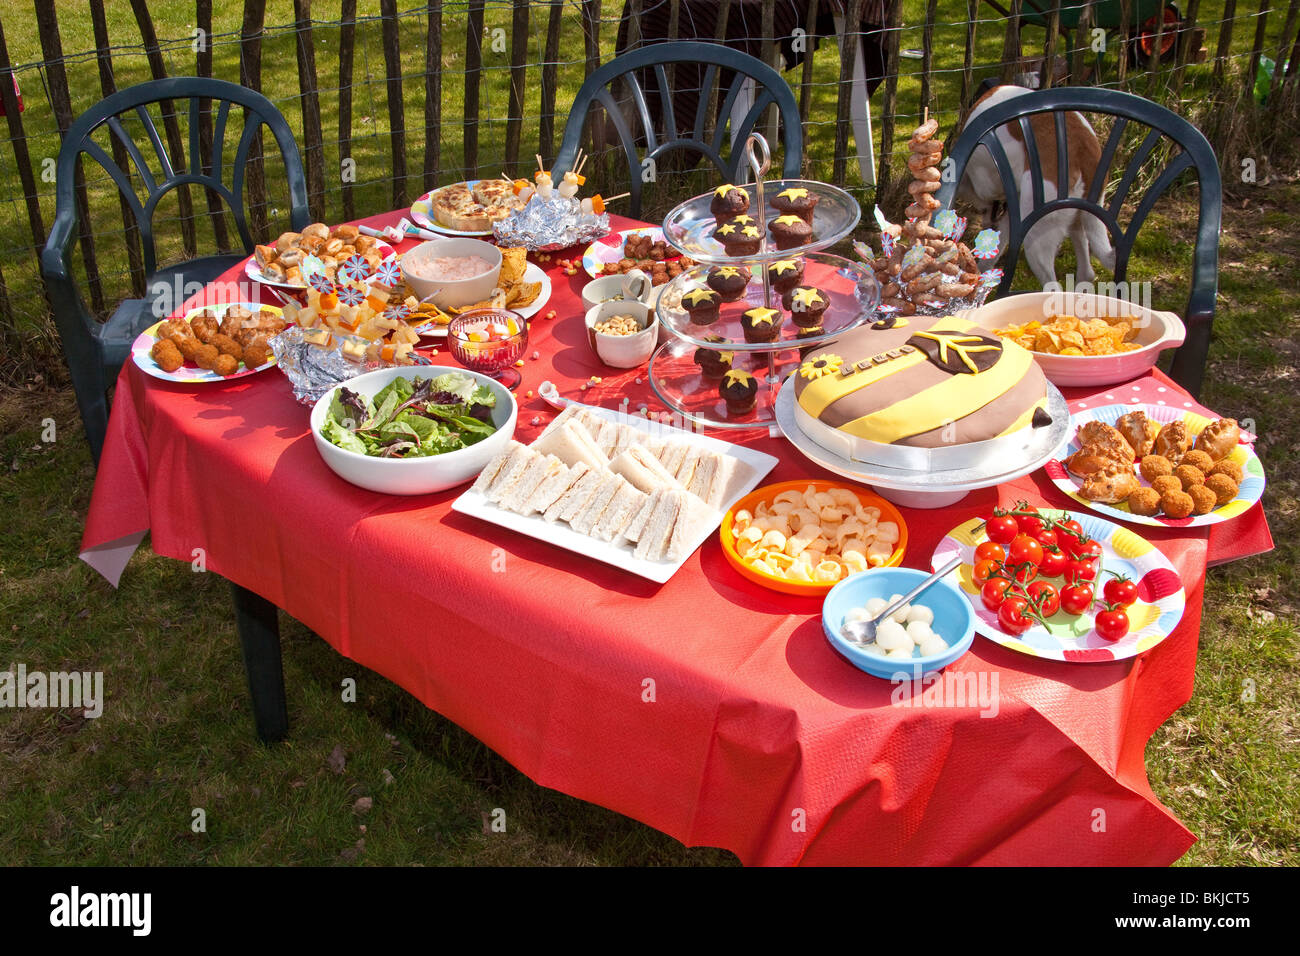 a table filled with kids party food and snacks hampshire england